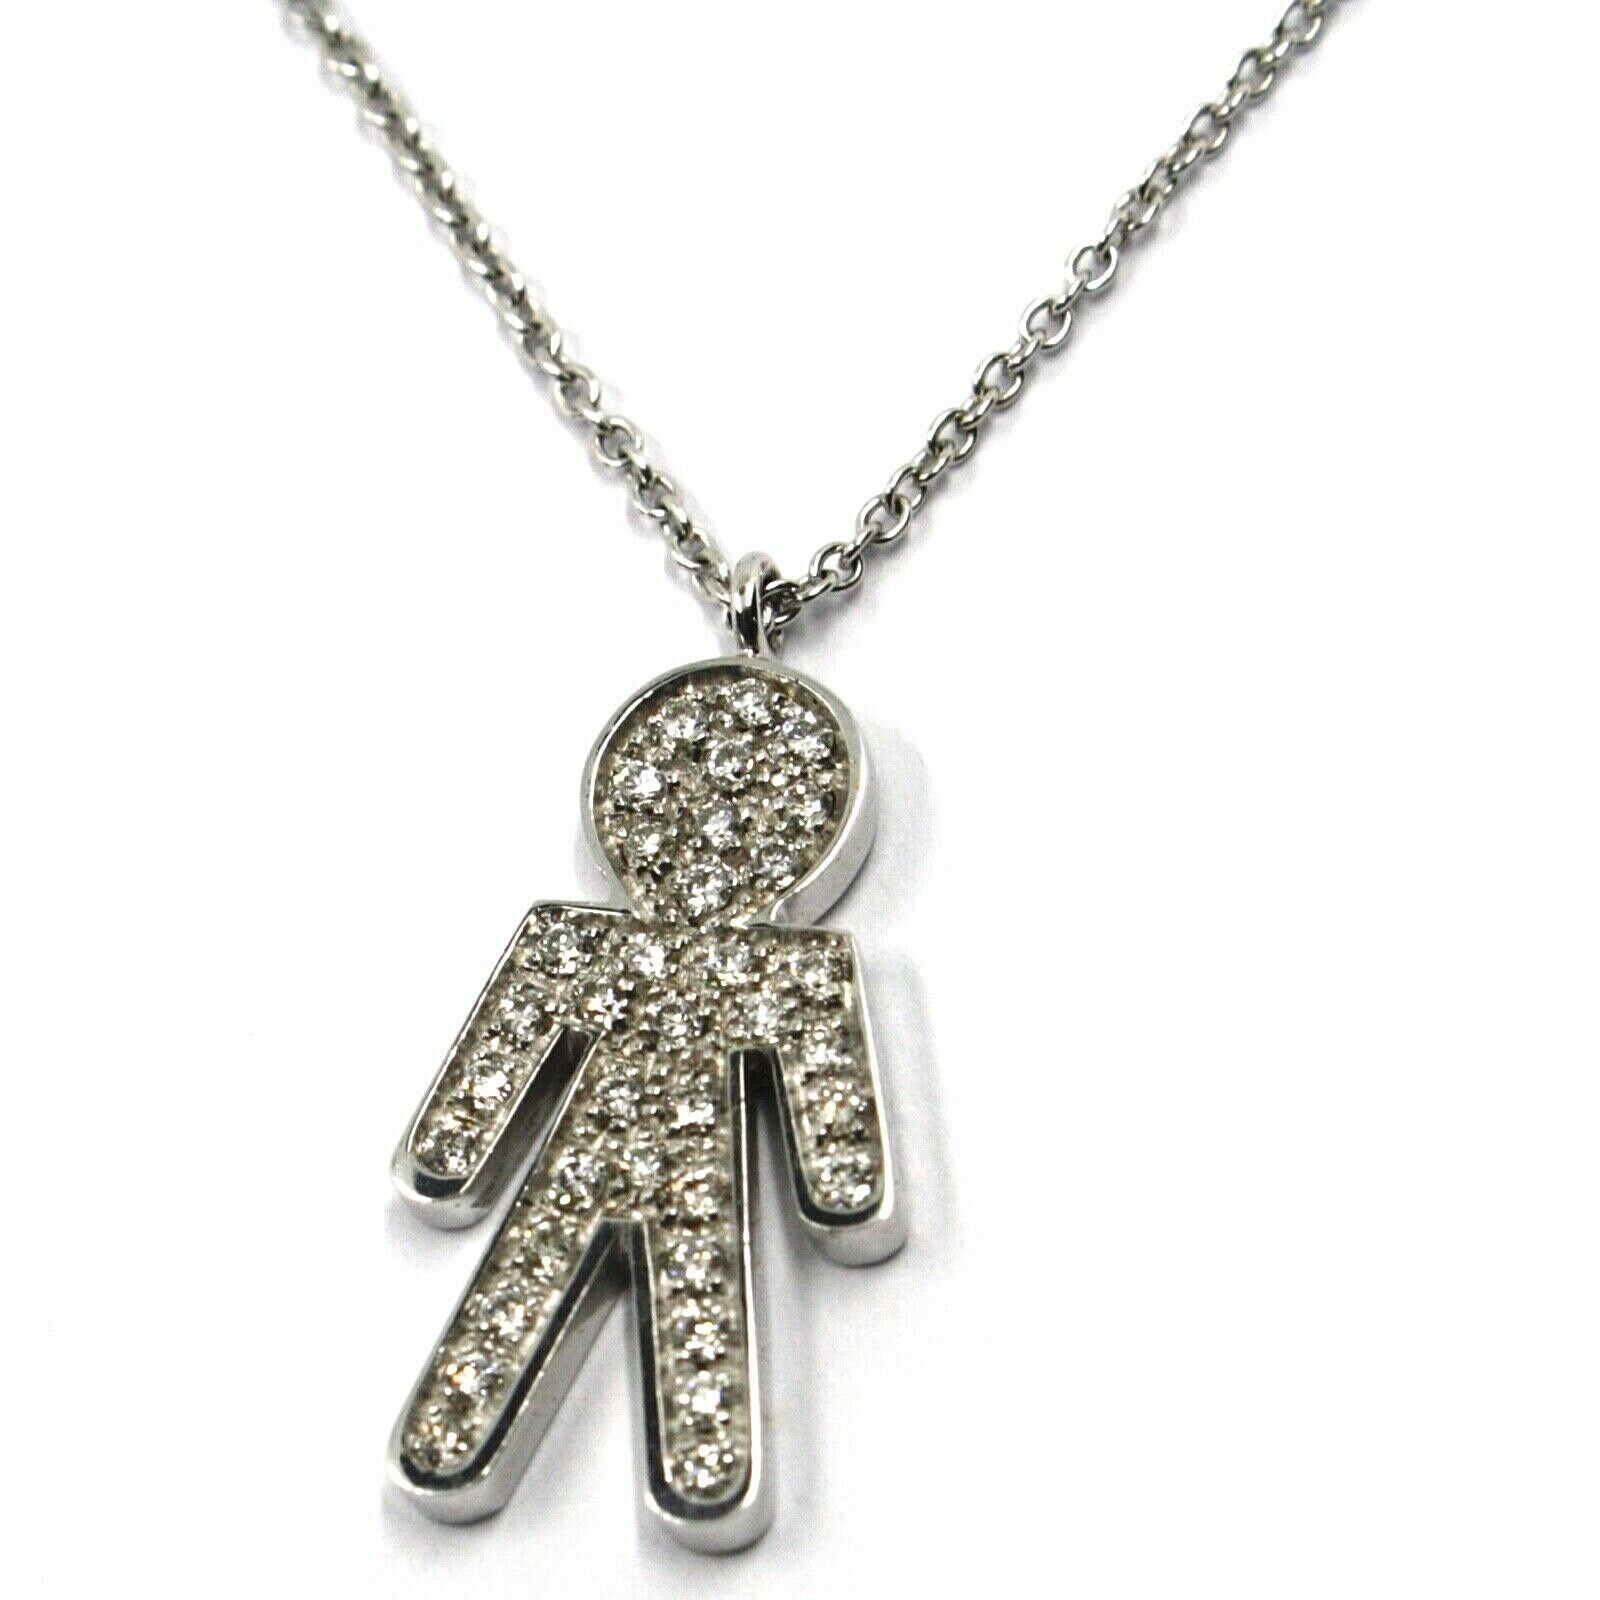 18K WHITE GOLD NECKLACE, BABY, CHILD, BOY, SON PENDANT WITH DIAMONDS ROLO CHAIN